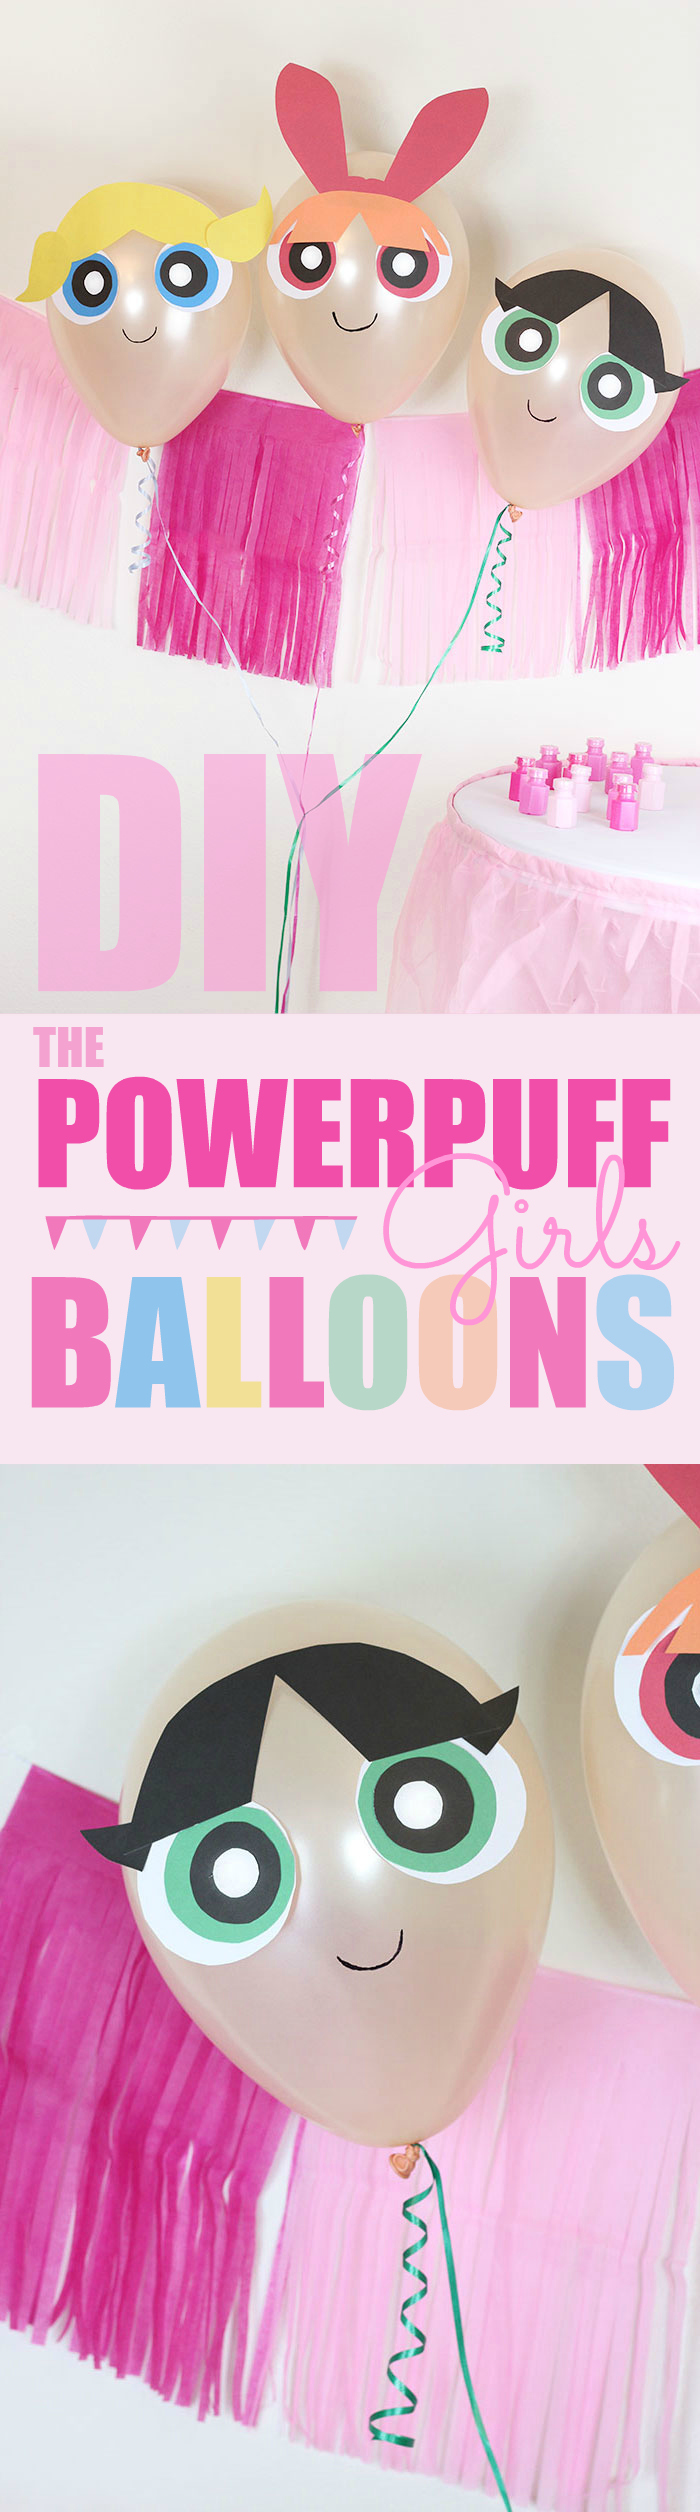 Diy The Powerpuff Girls Balloons  Cutefetti-4050